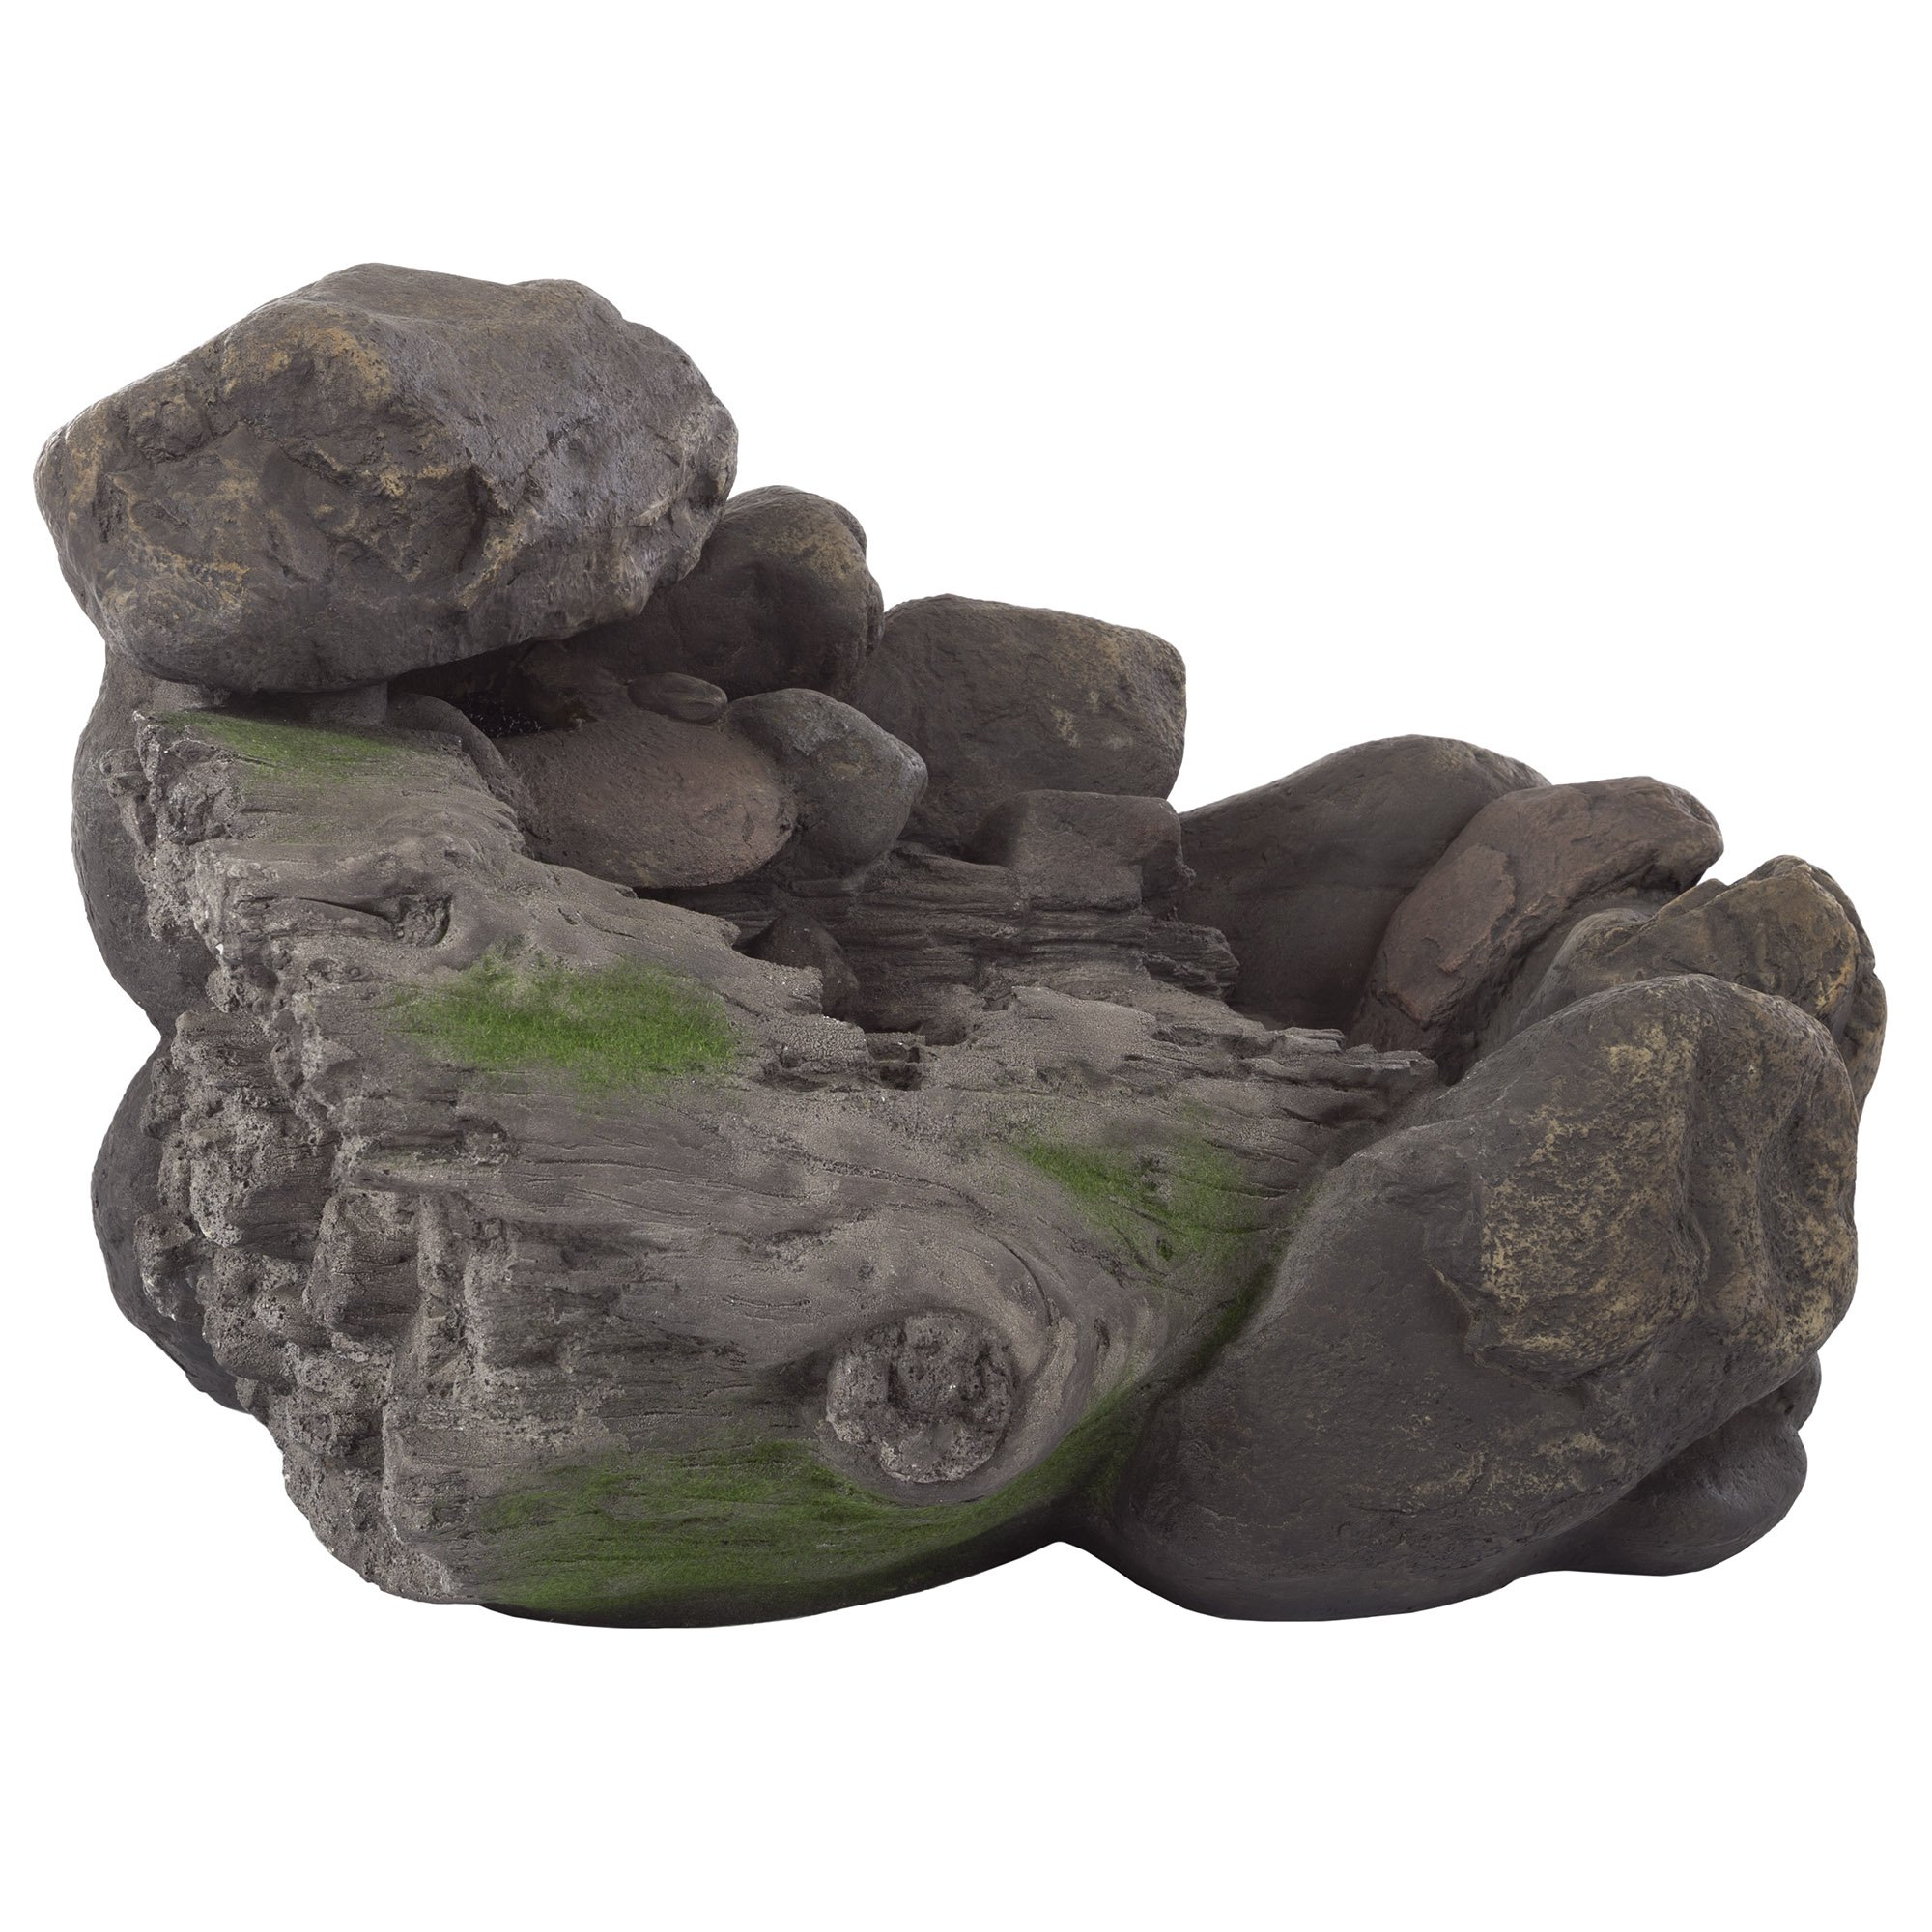 Outdoor Water Fountain With Stone Waterfall, Natural Looking Rock and Soothing Sound for Decor on Patio, Lawn and Garden By Pure Garden by Pure Garden